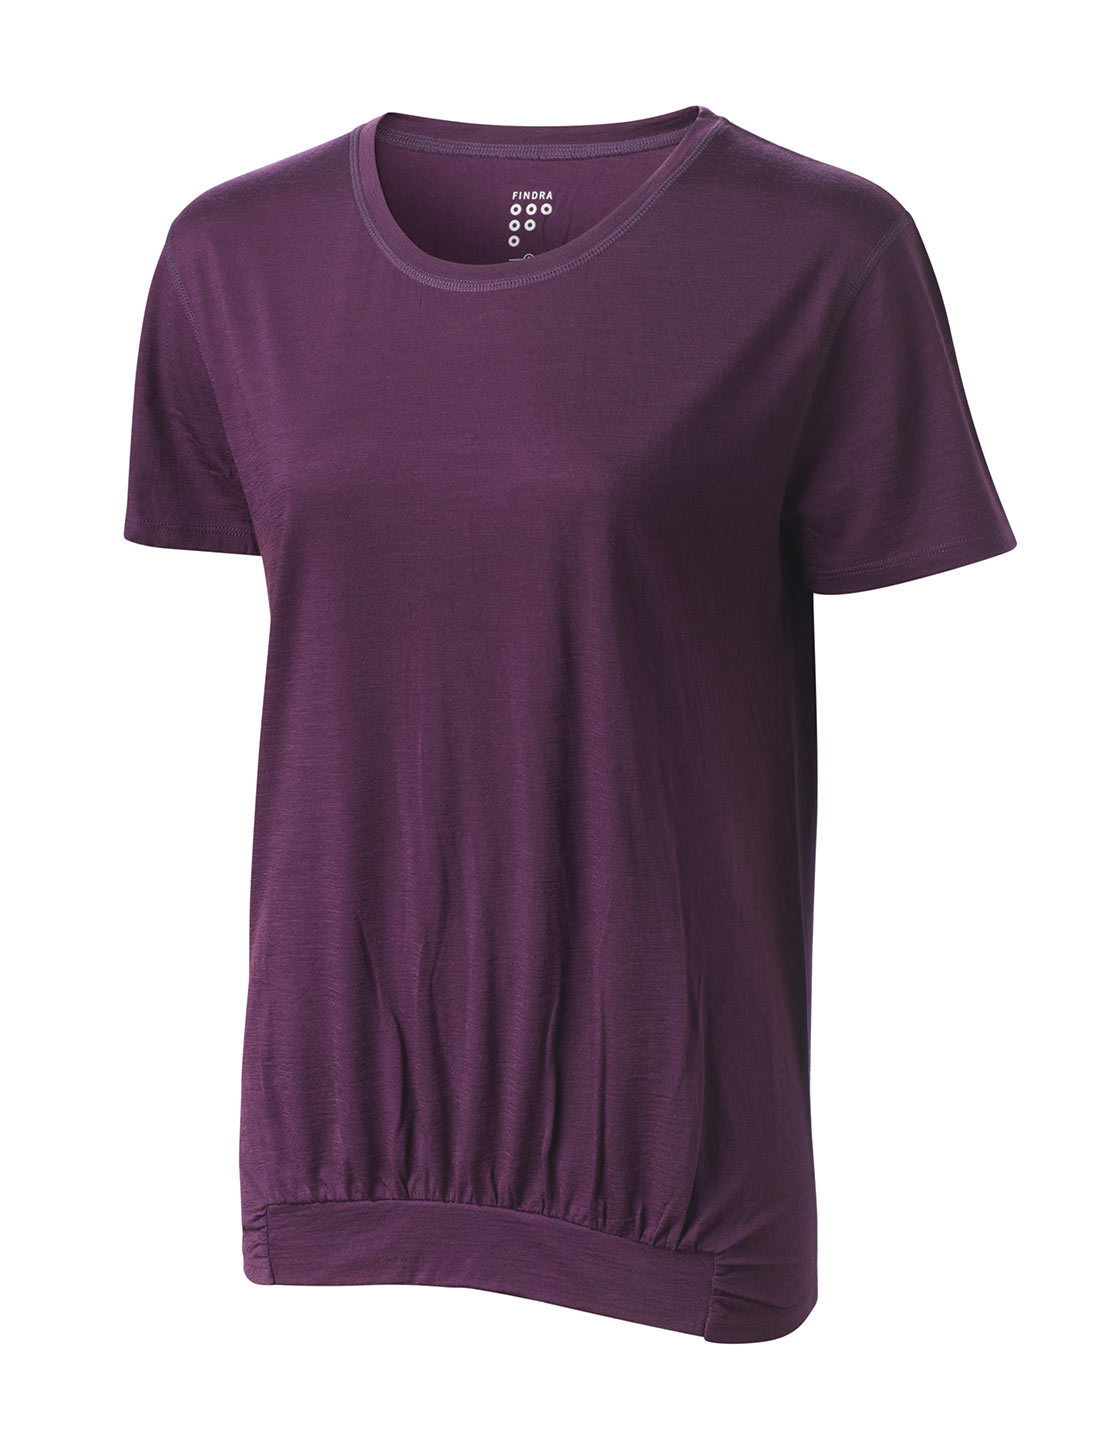 FINDRA Women's Ailsa Merino T-Shirt | Jerseys